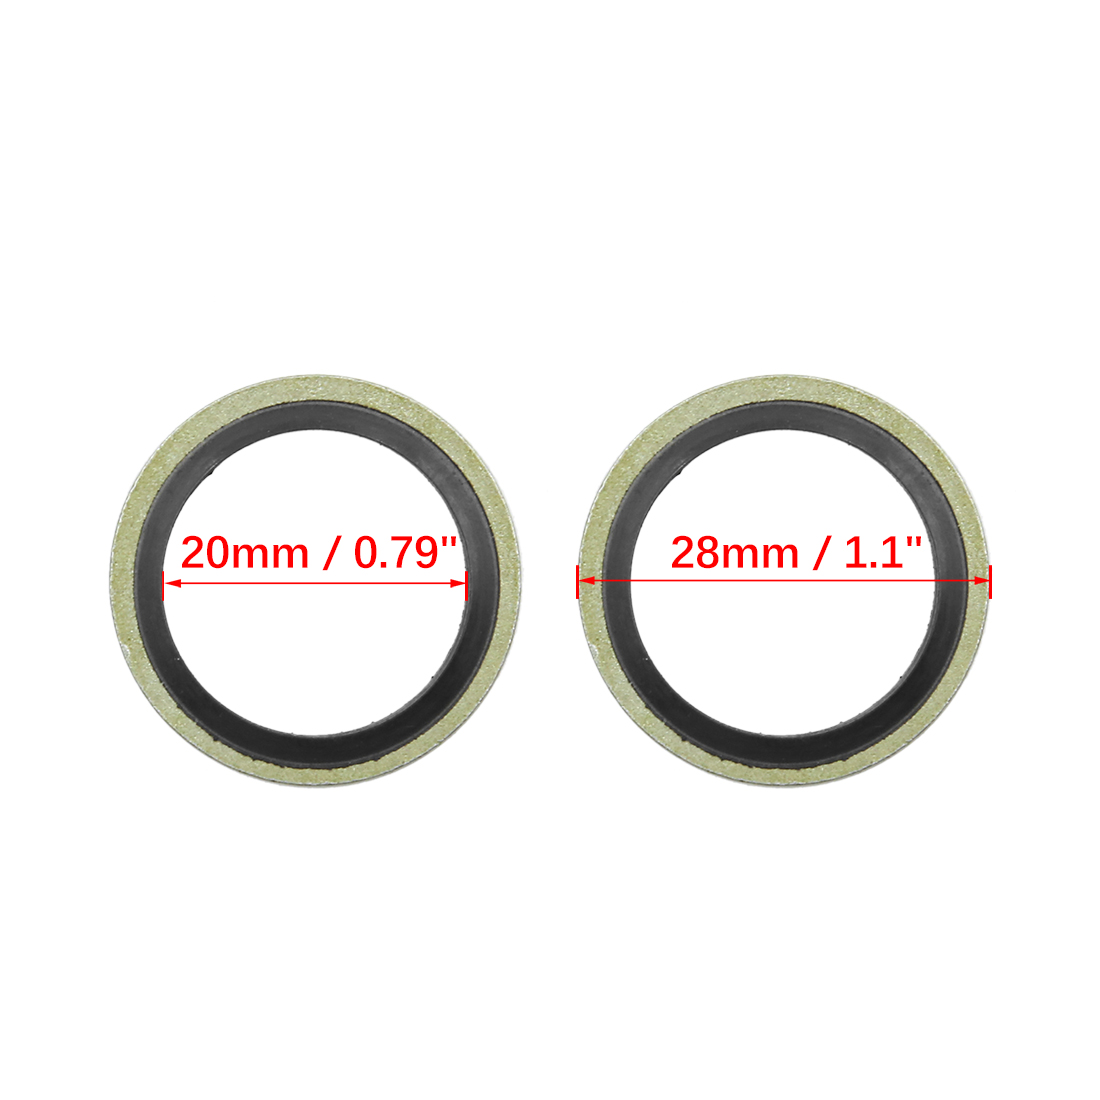 10pcs Engine Oil Crush Washers Drain Plug Gaskets 20mm ID. 28mm OD. for Car - image 1 of 2